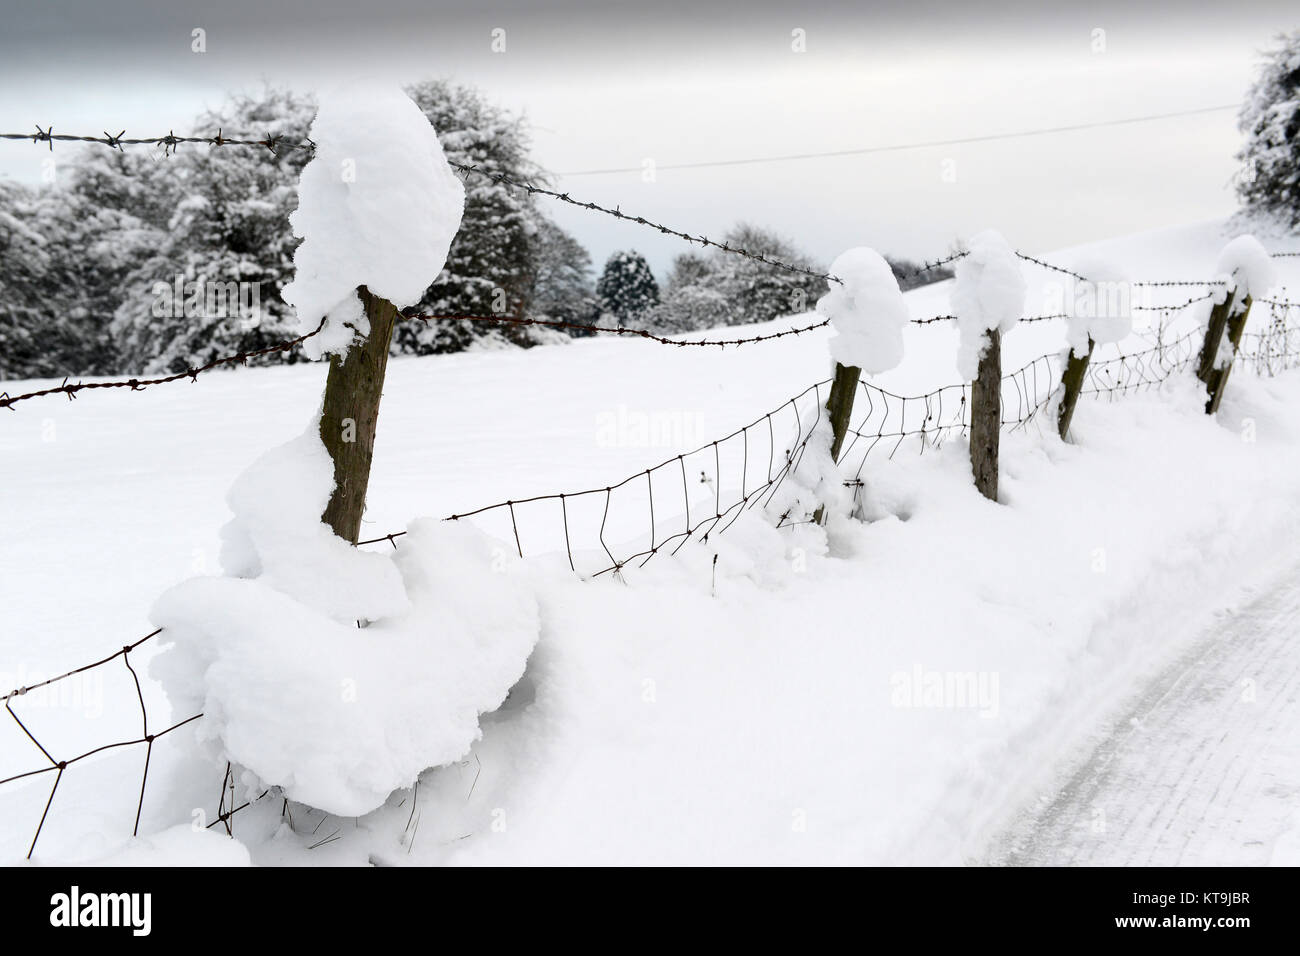 Deep snow on barbed wire fence winter 2017 - Stock Image